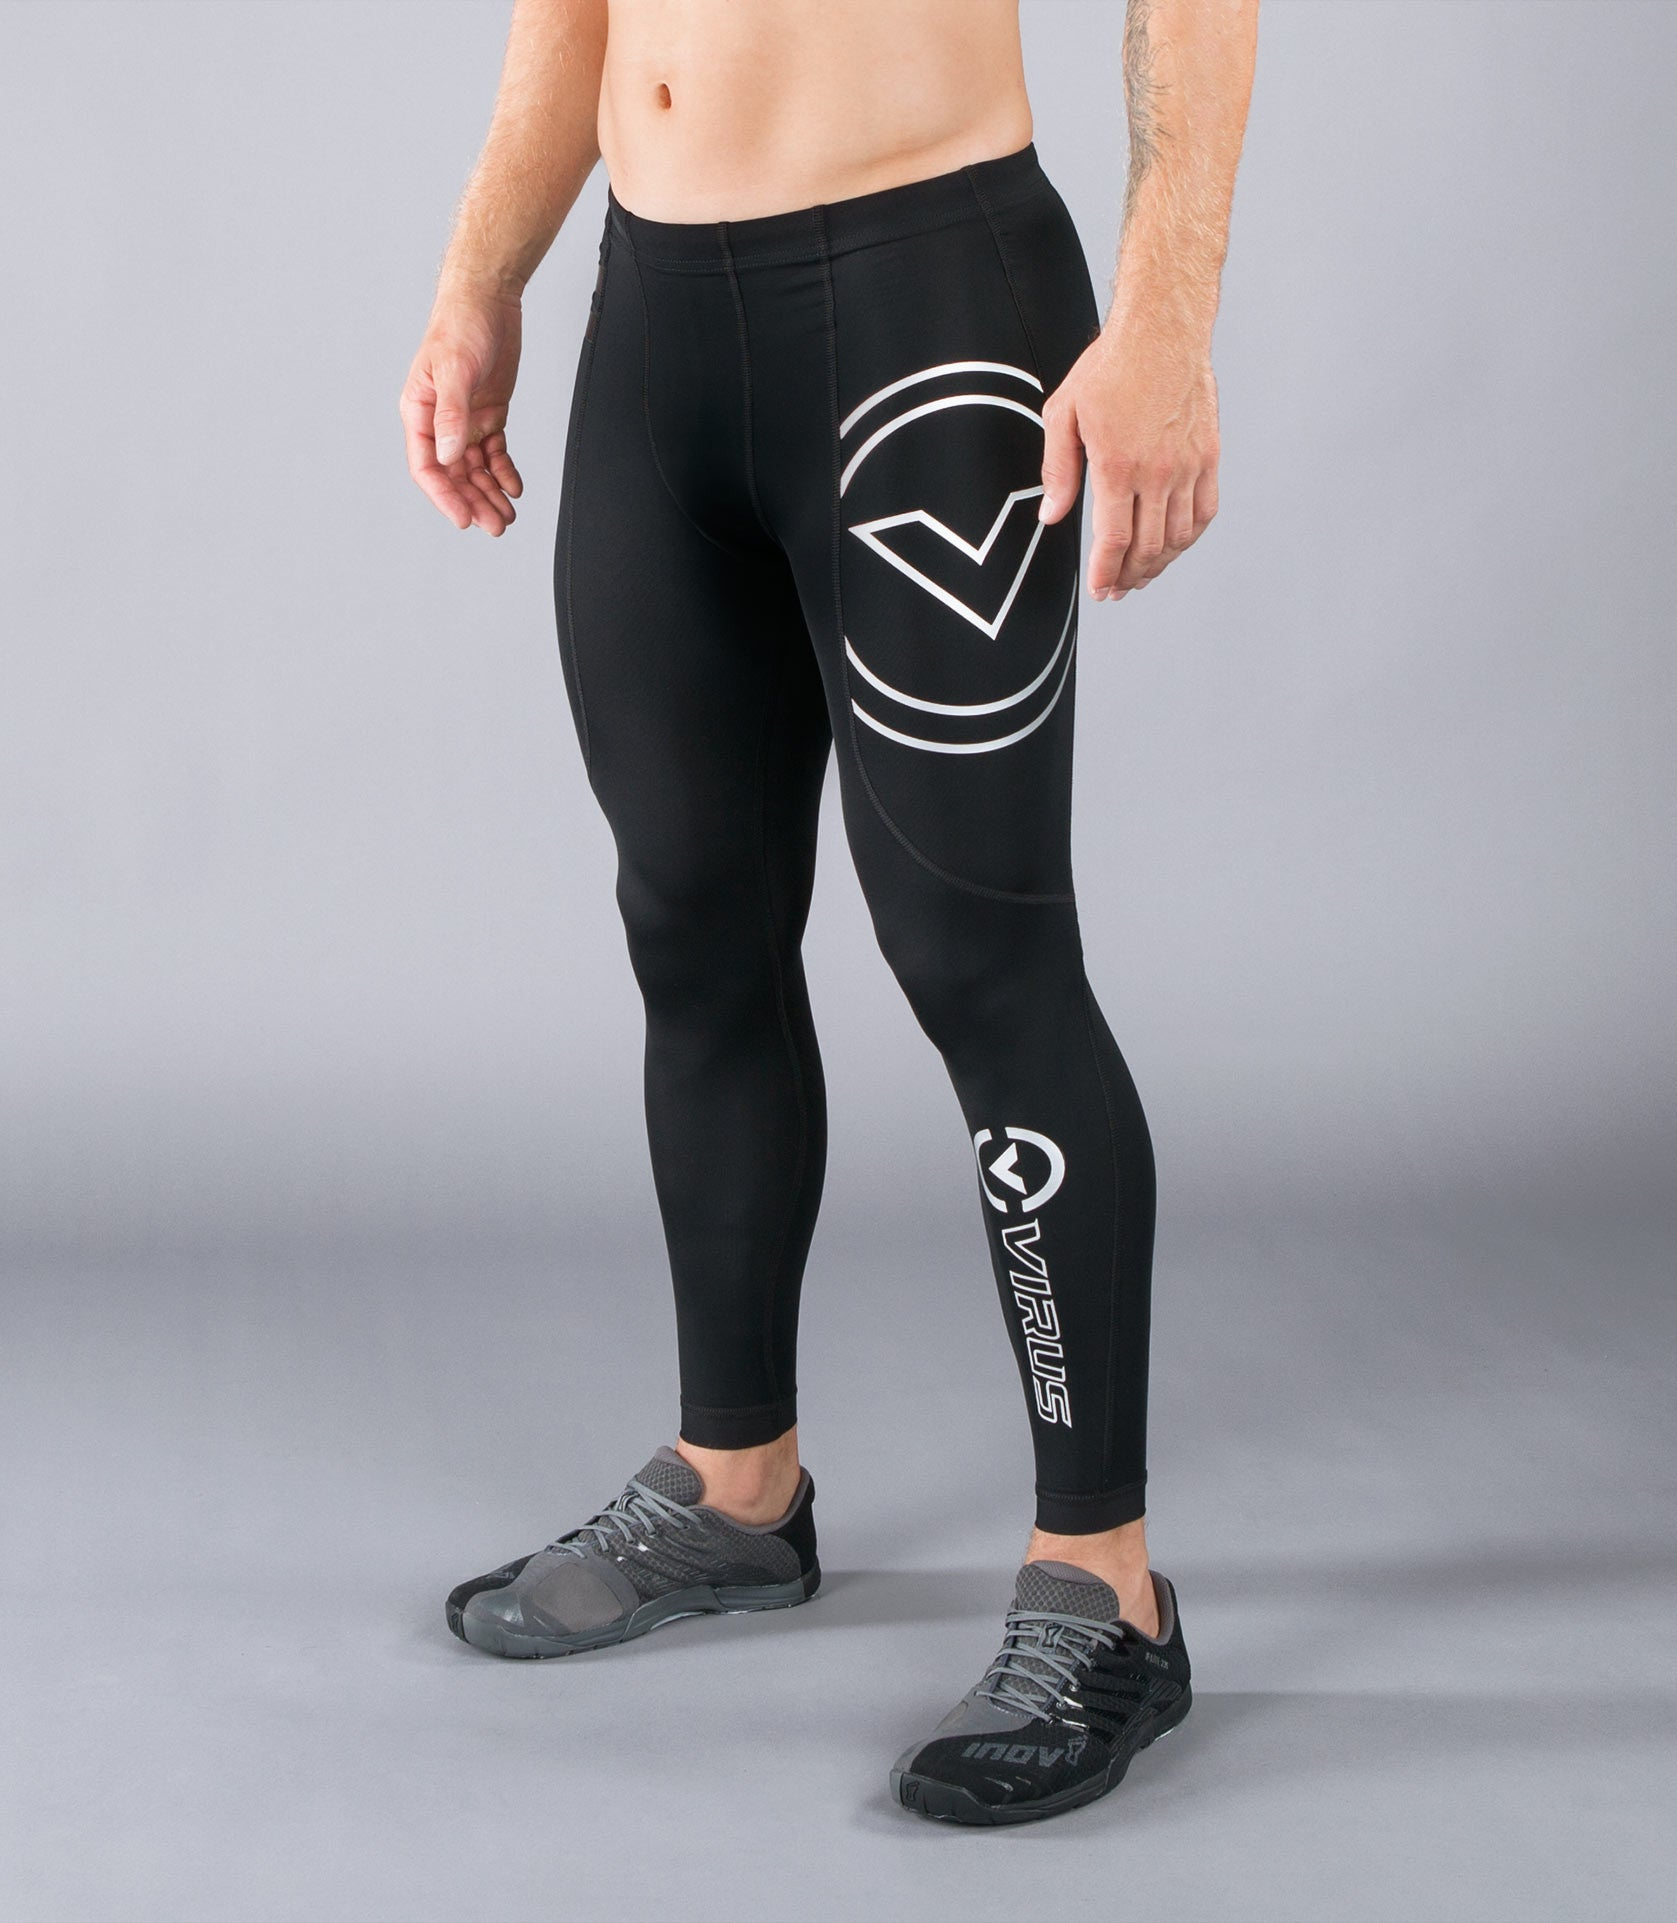 Men's Stay Cool Compression V2 Tech Pants (RX7)